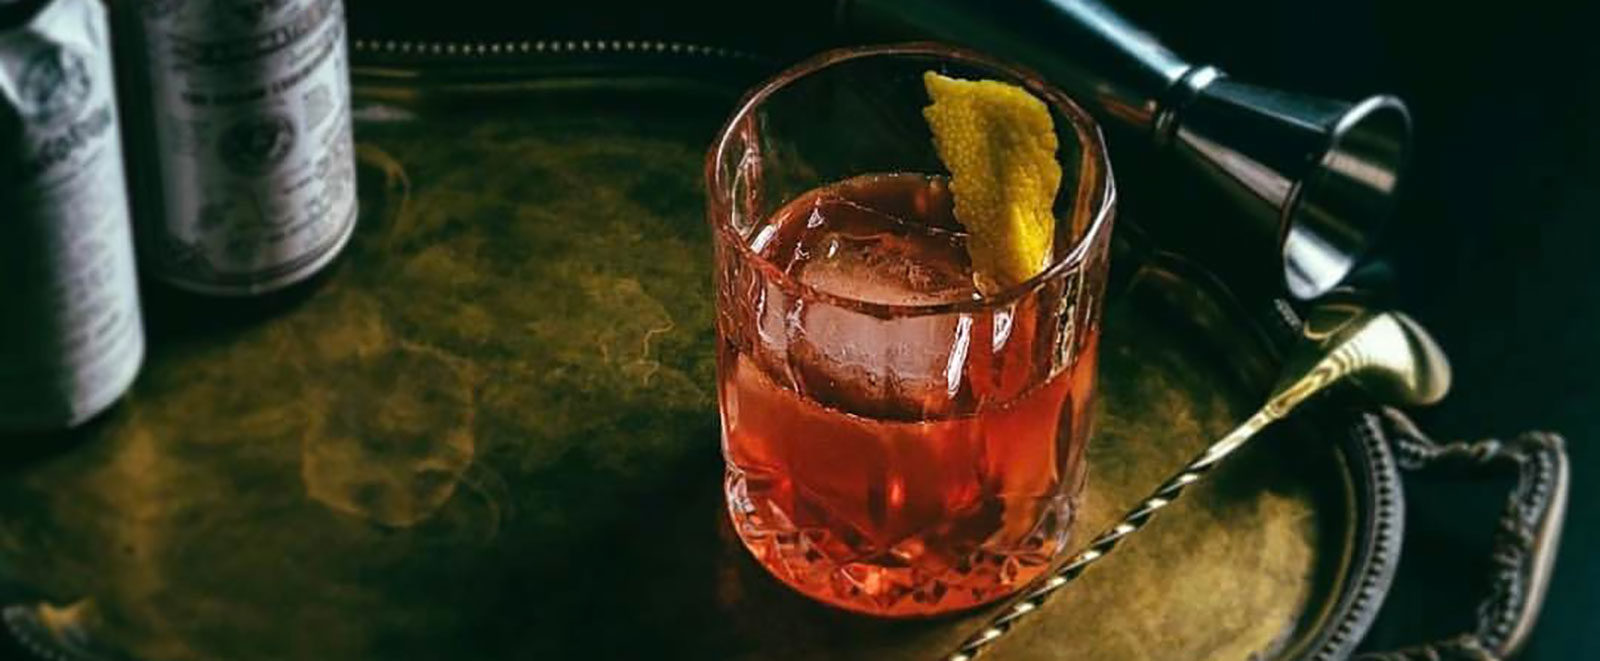 LEGENDS OF THE FALL: COCKTAILS FOR THE SEASON